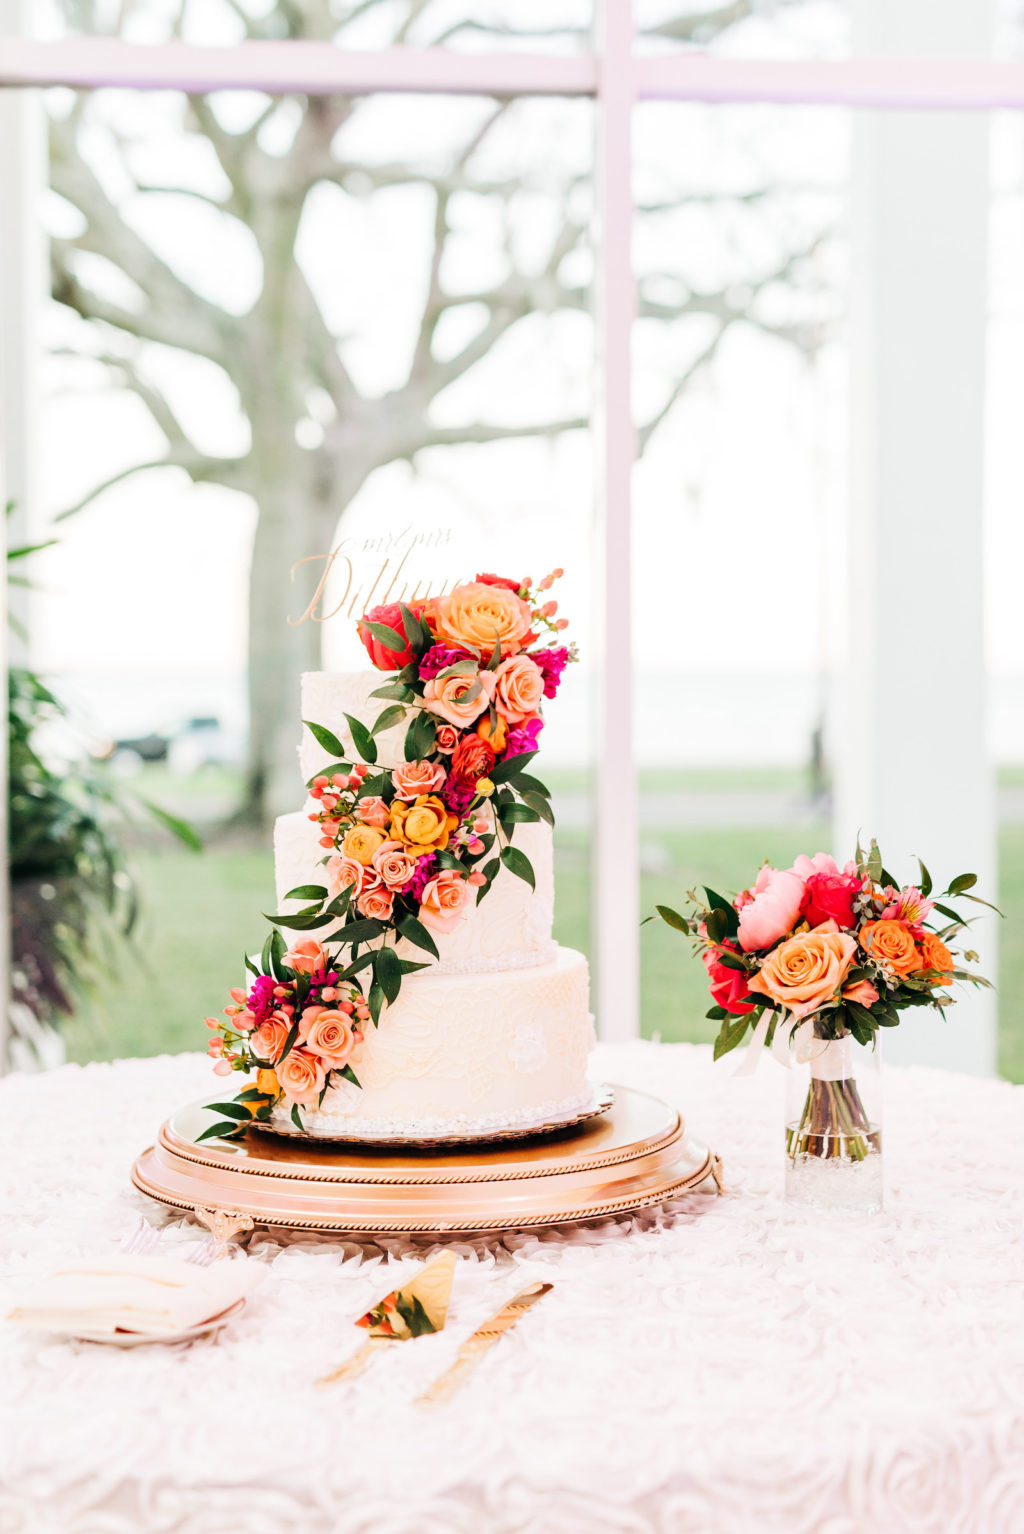 Elegant Three Tier White Wedding Cake with Vibrant Cascading Pink, Orange and Greenery Flowers   Tampa Bay Florist Monarch Events and Design